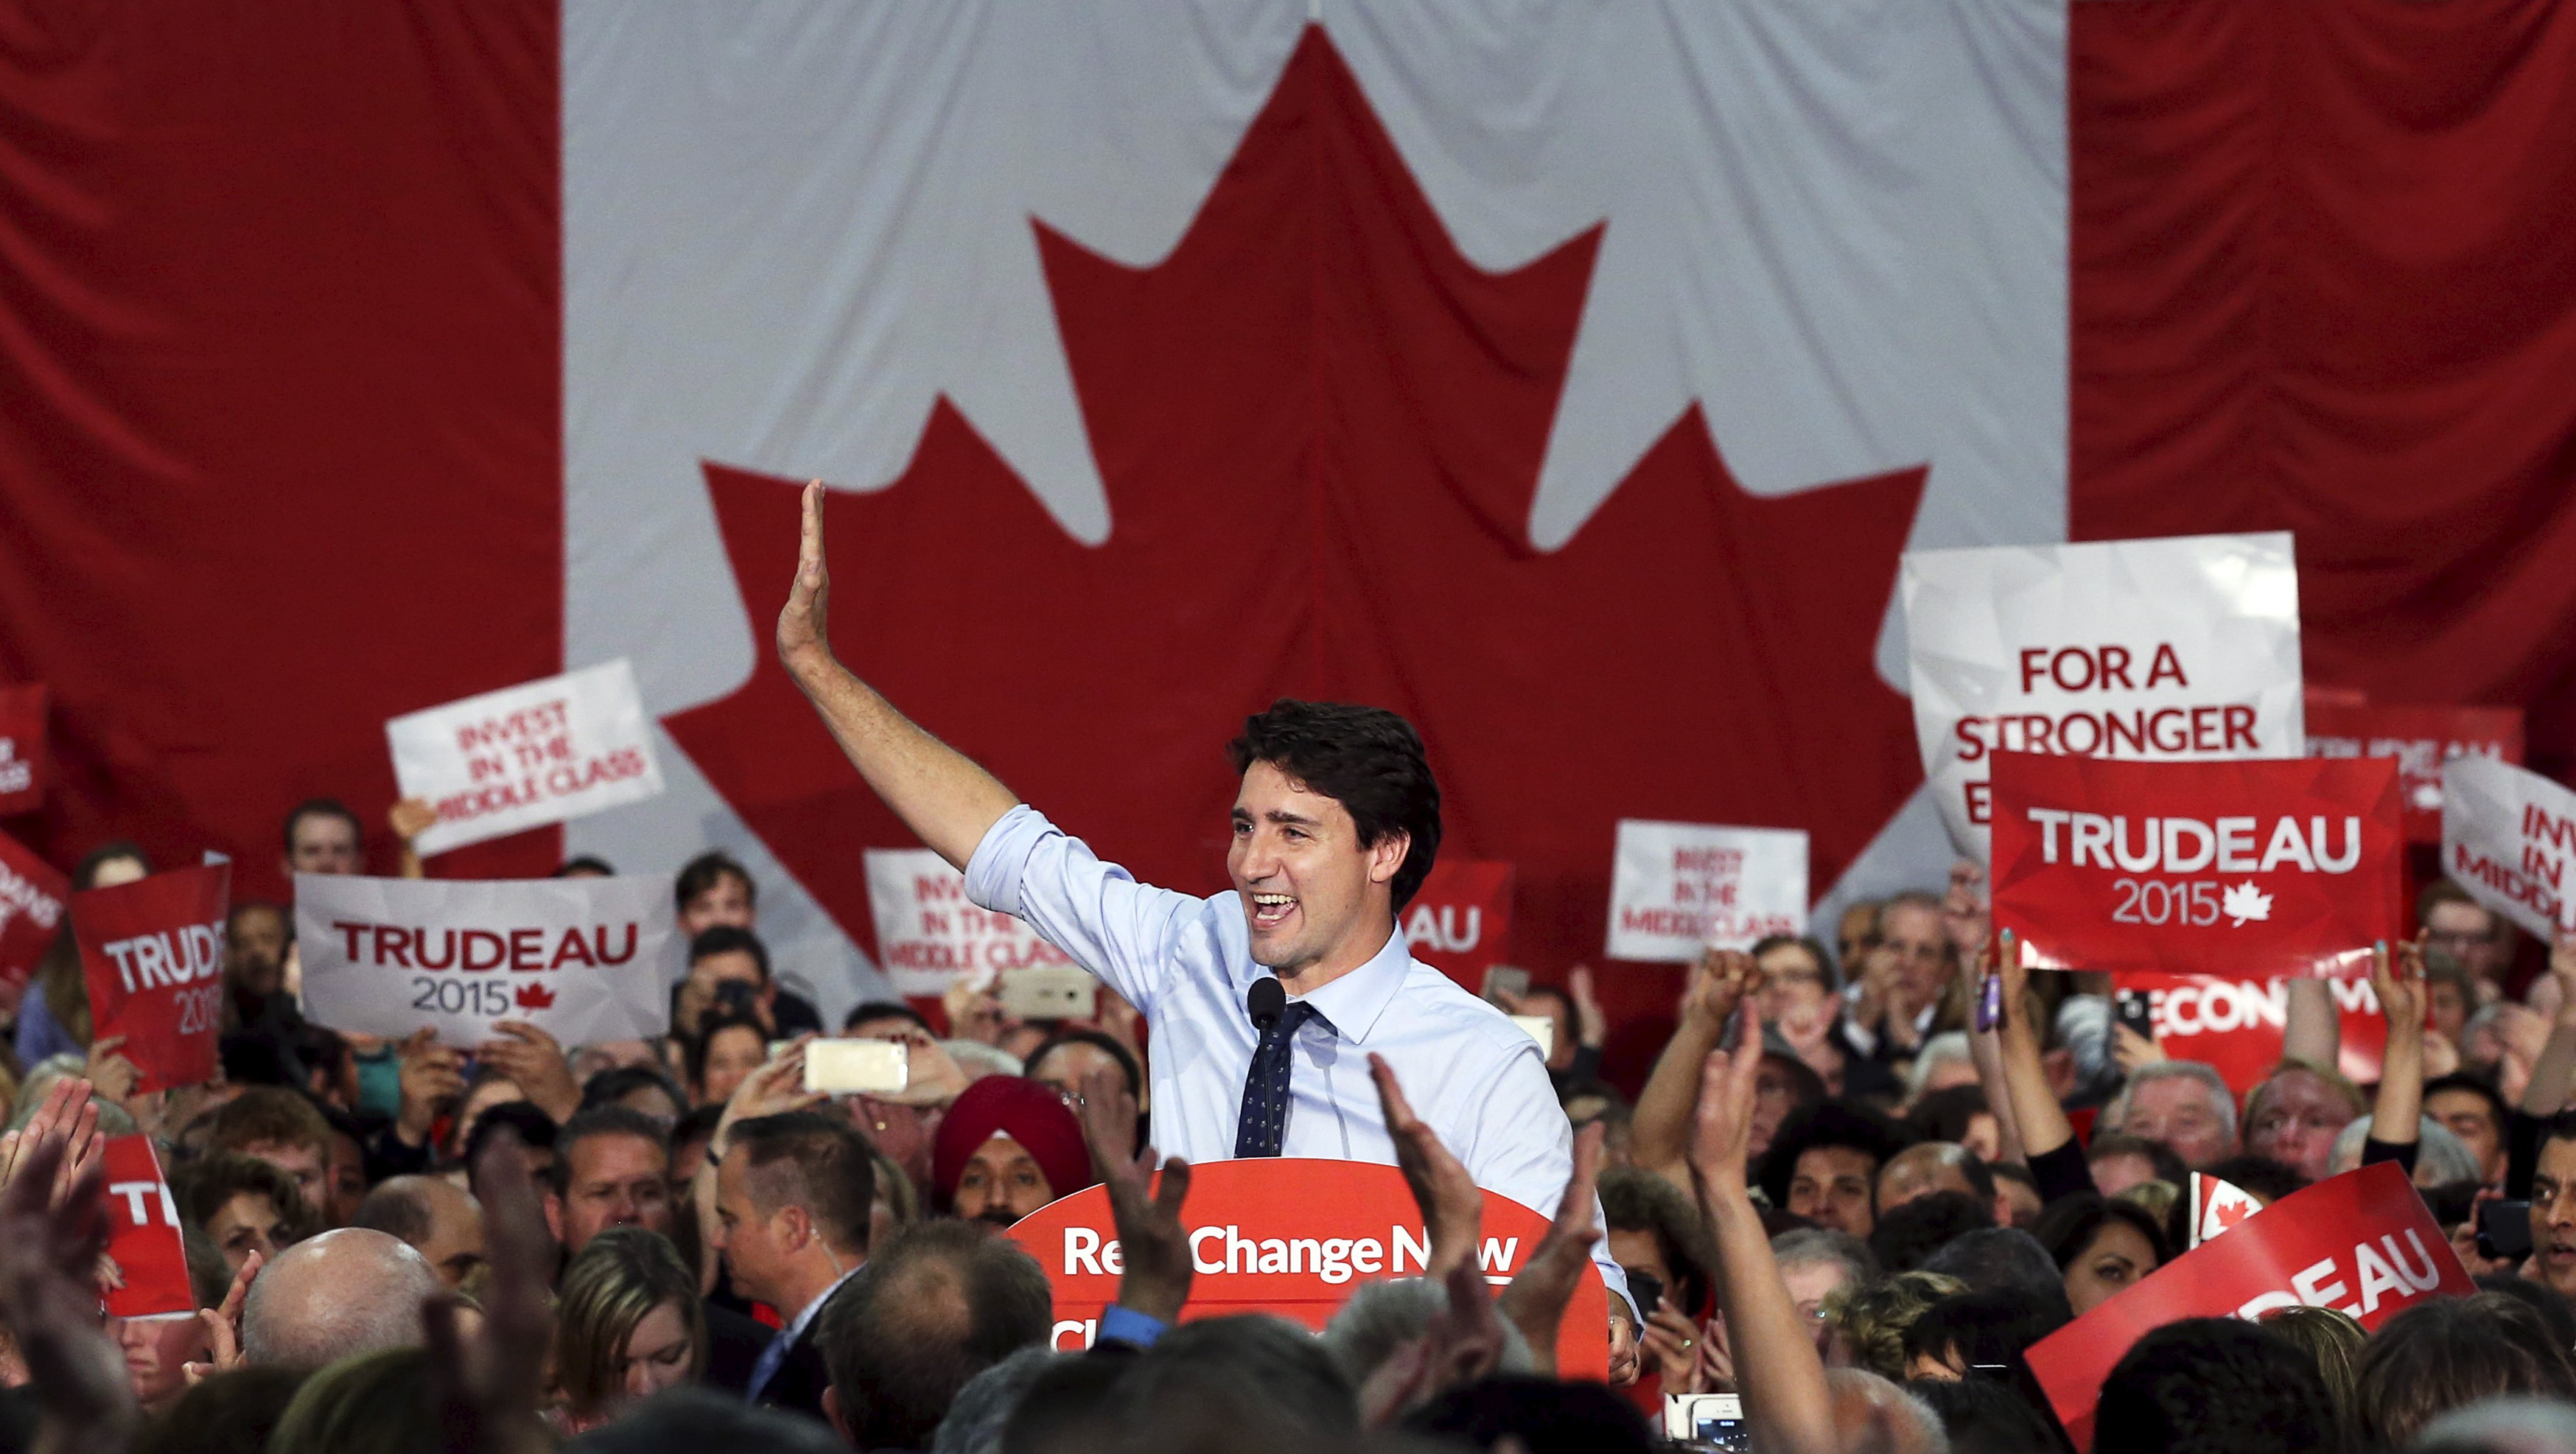 Liberal leader Trudeau waves during a campaign rally in North Vancouver